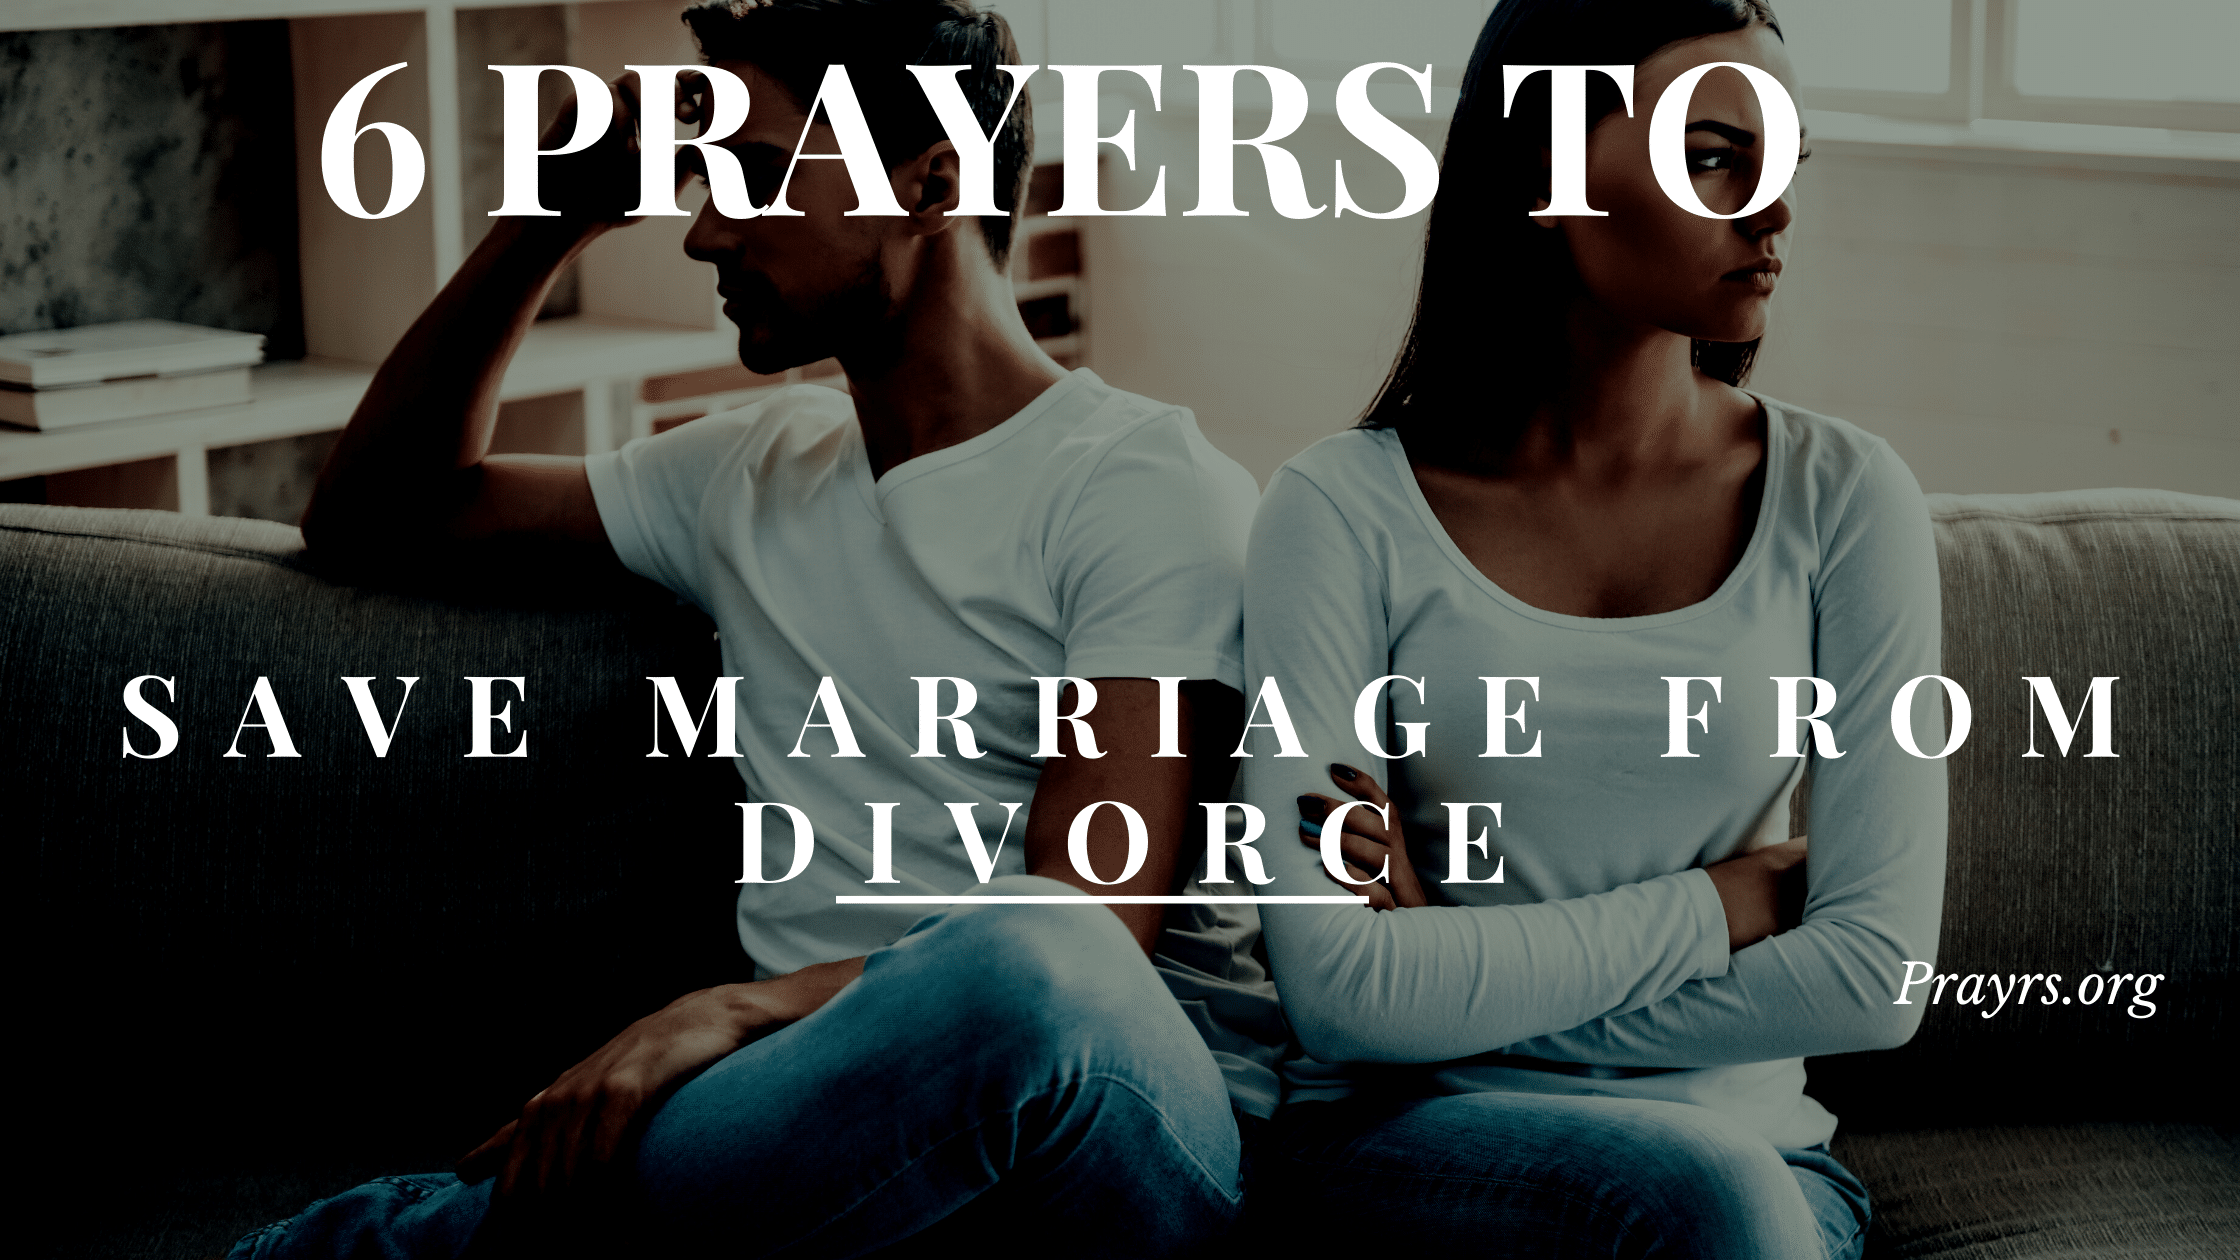 Prayers to Save Marriage from Divorce